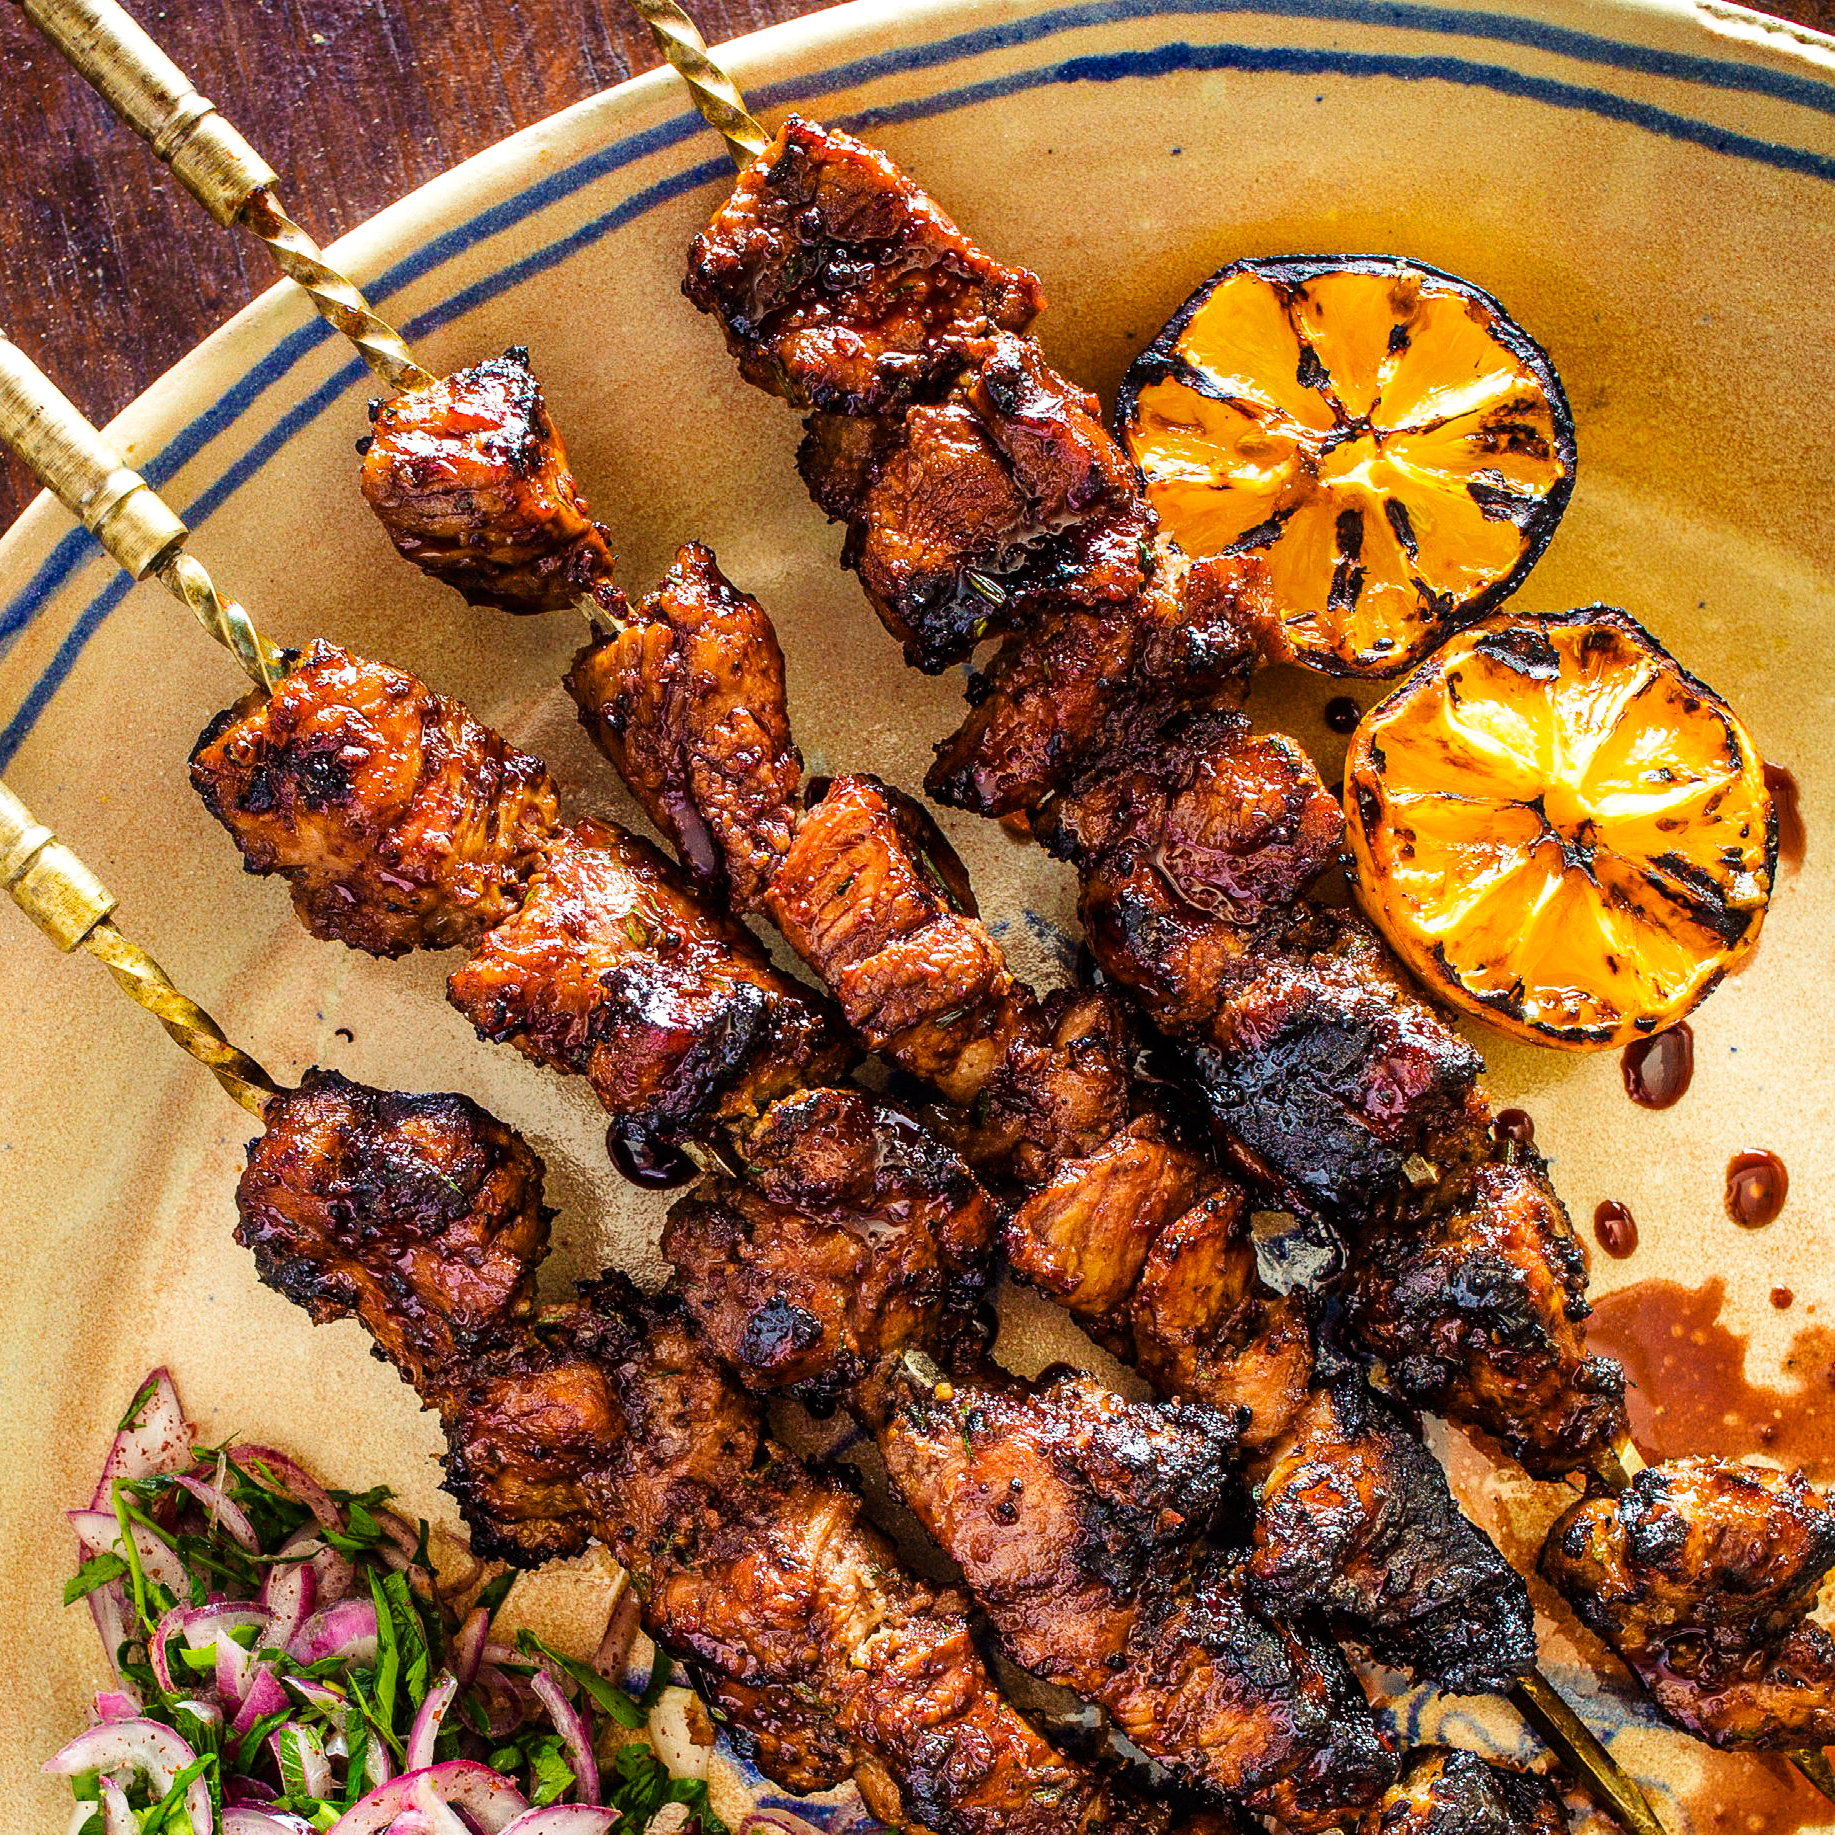 Pomegranate-Glazed Pork Skewers with Dill-Onion Marinade